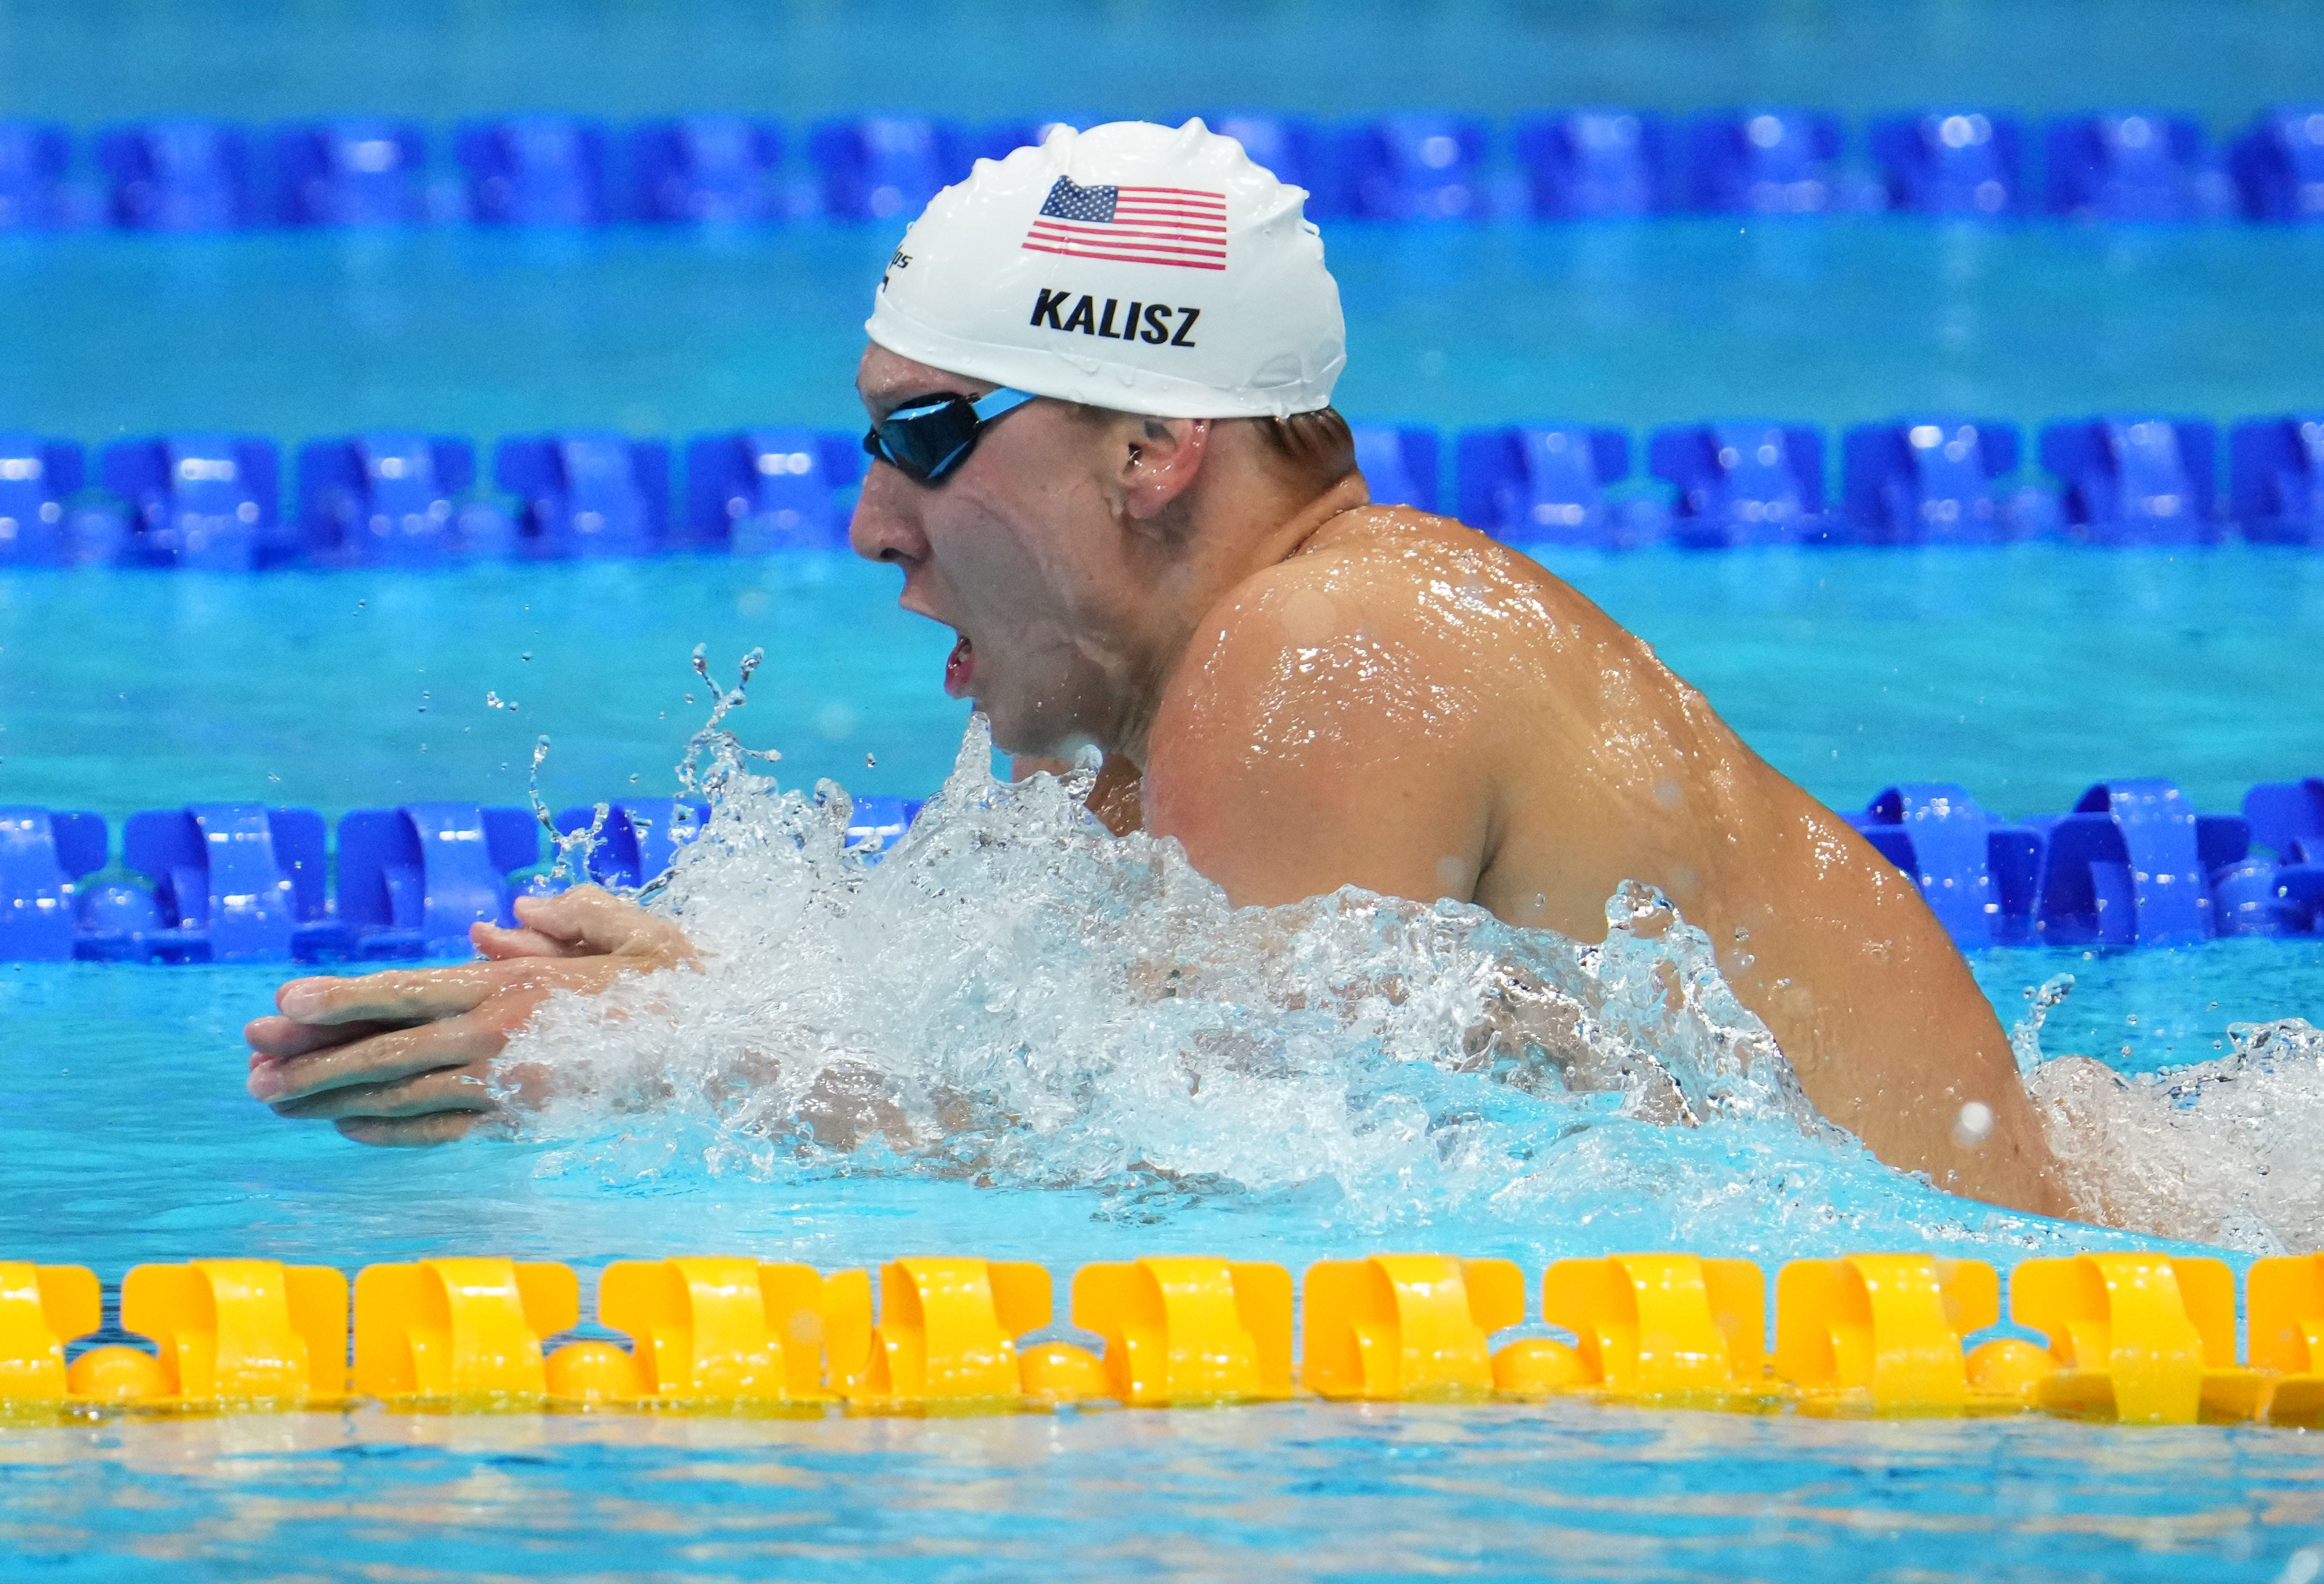 Tokyo Olympics live updates: Team USA earns first medals on Day 2 of Summer Games